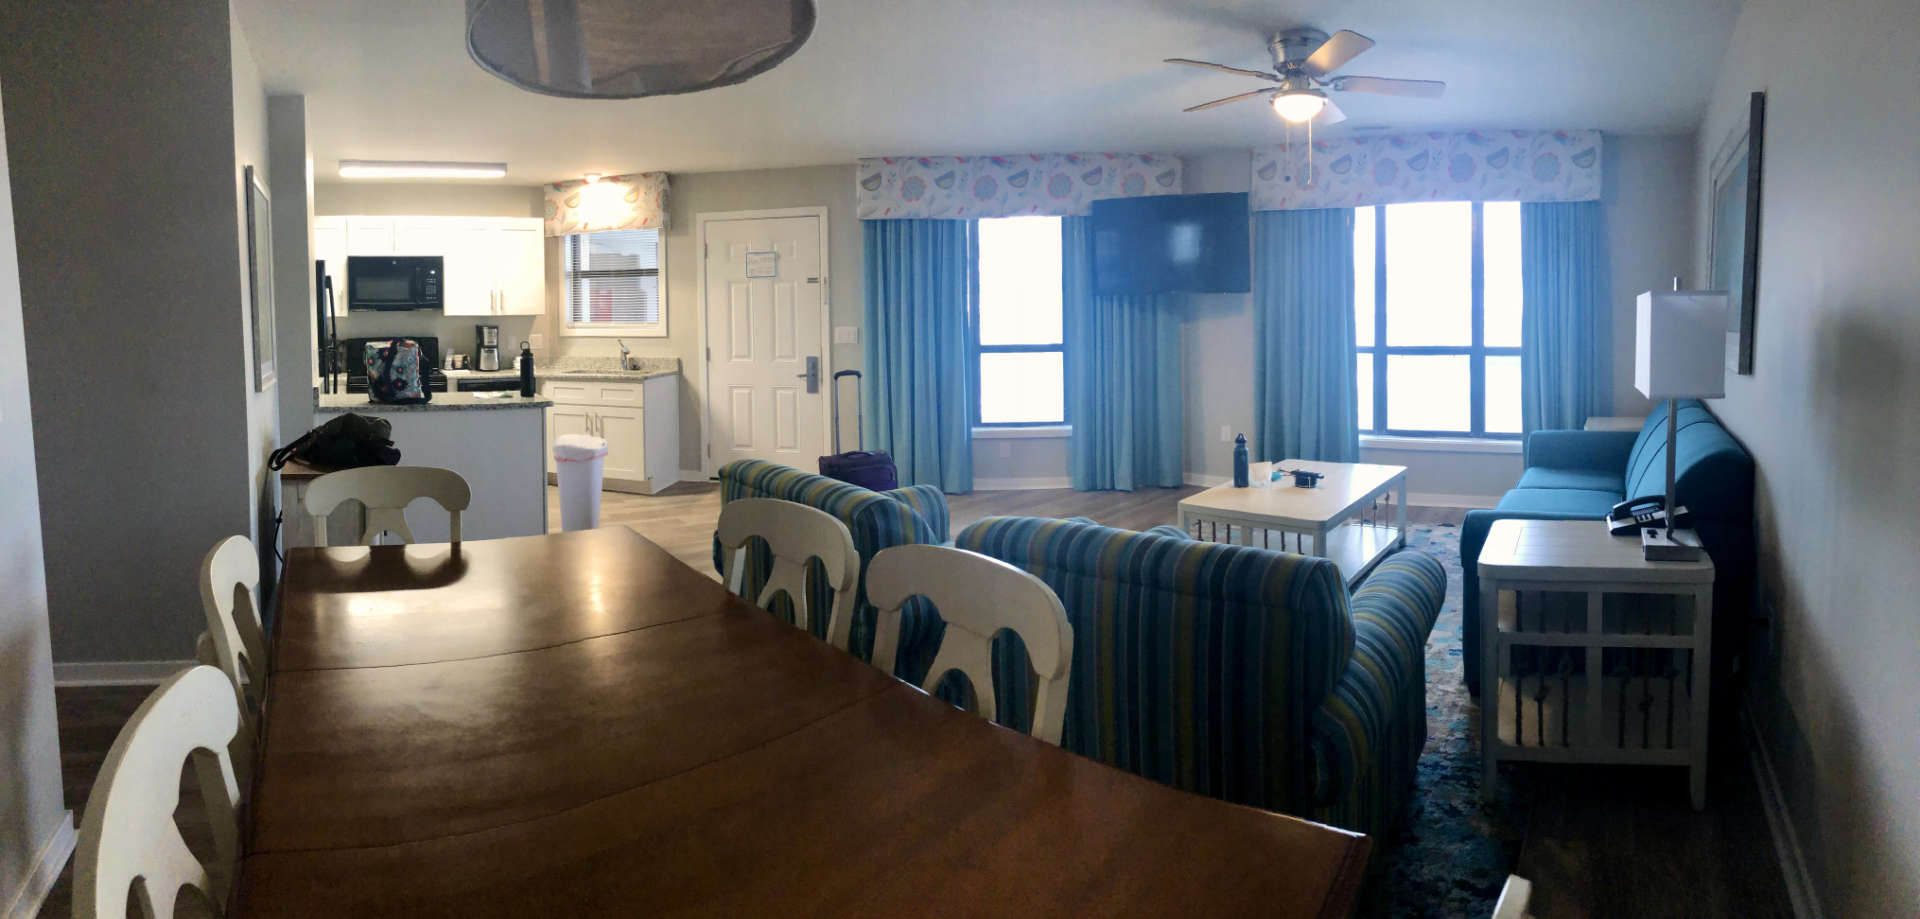 The dining room, living room, and kitchen setup in our beach condo.